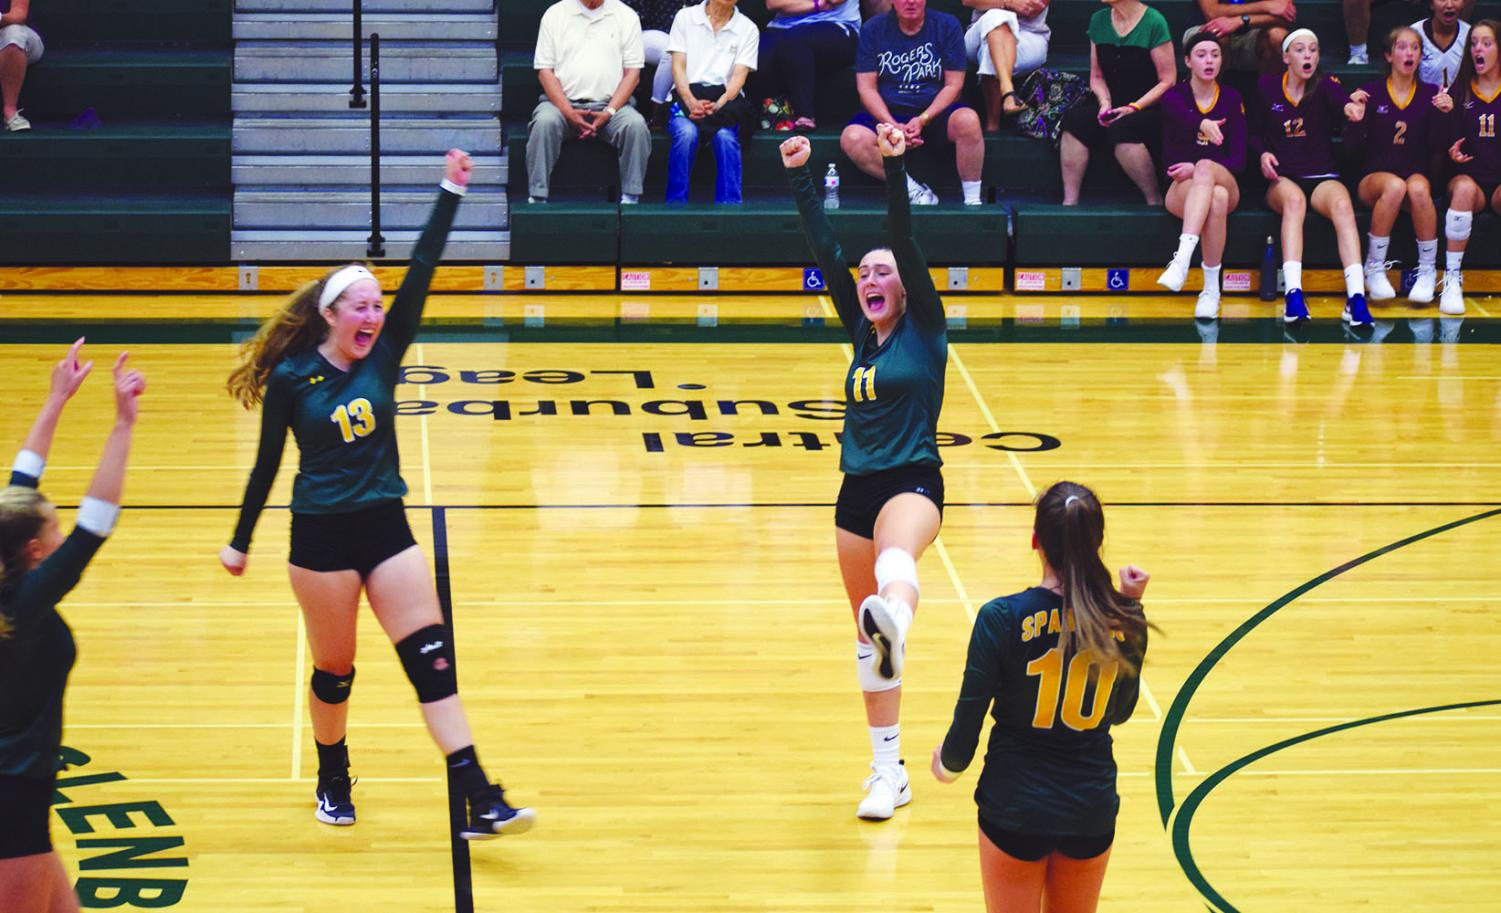 Junior Casey Brown (center) celebrates with her teammates after a point is scored against Loyola Academy on Aug. 29. This has been Brown's first year with the Spartans, helping them to a record of 12-5 as of Sept. 24. Photo by Grace Chatas